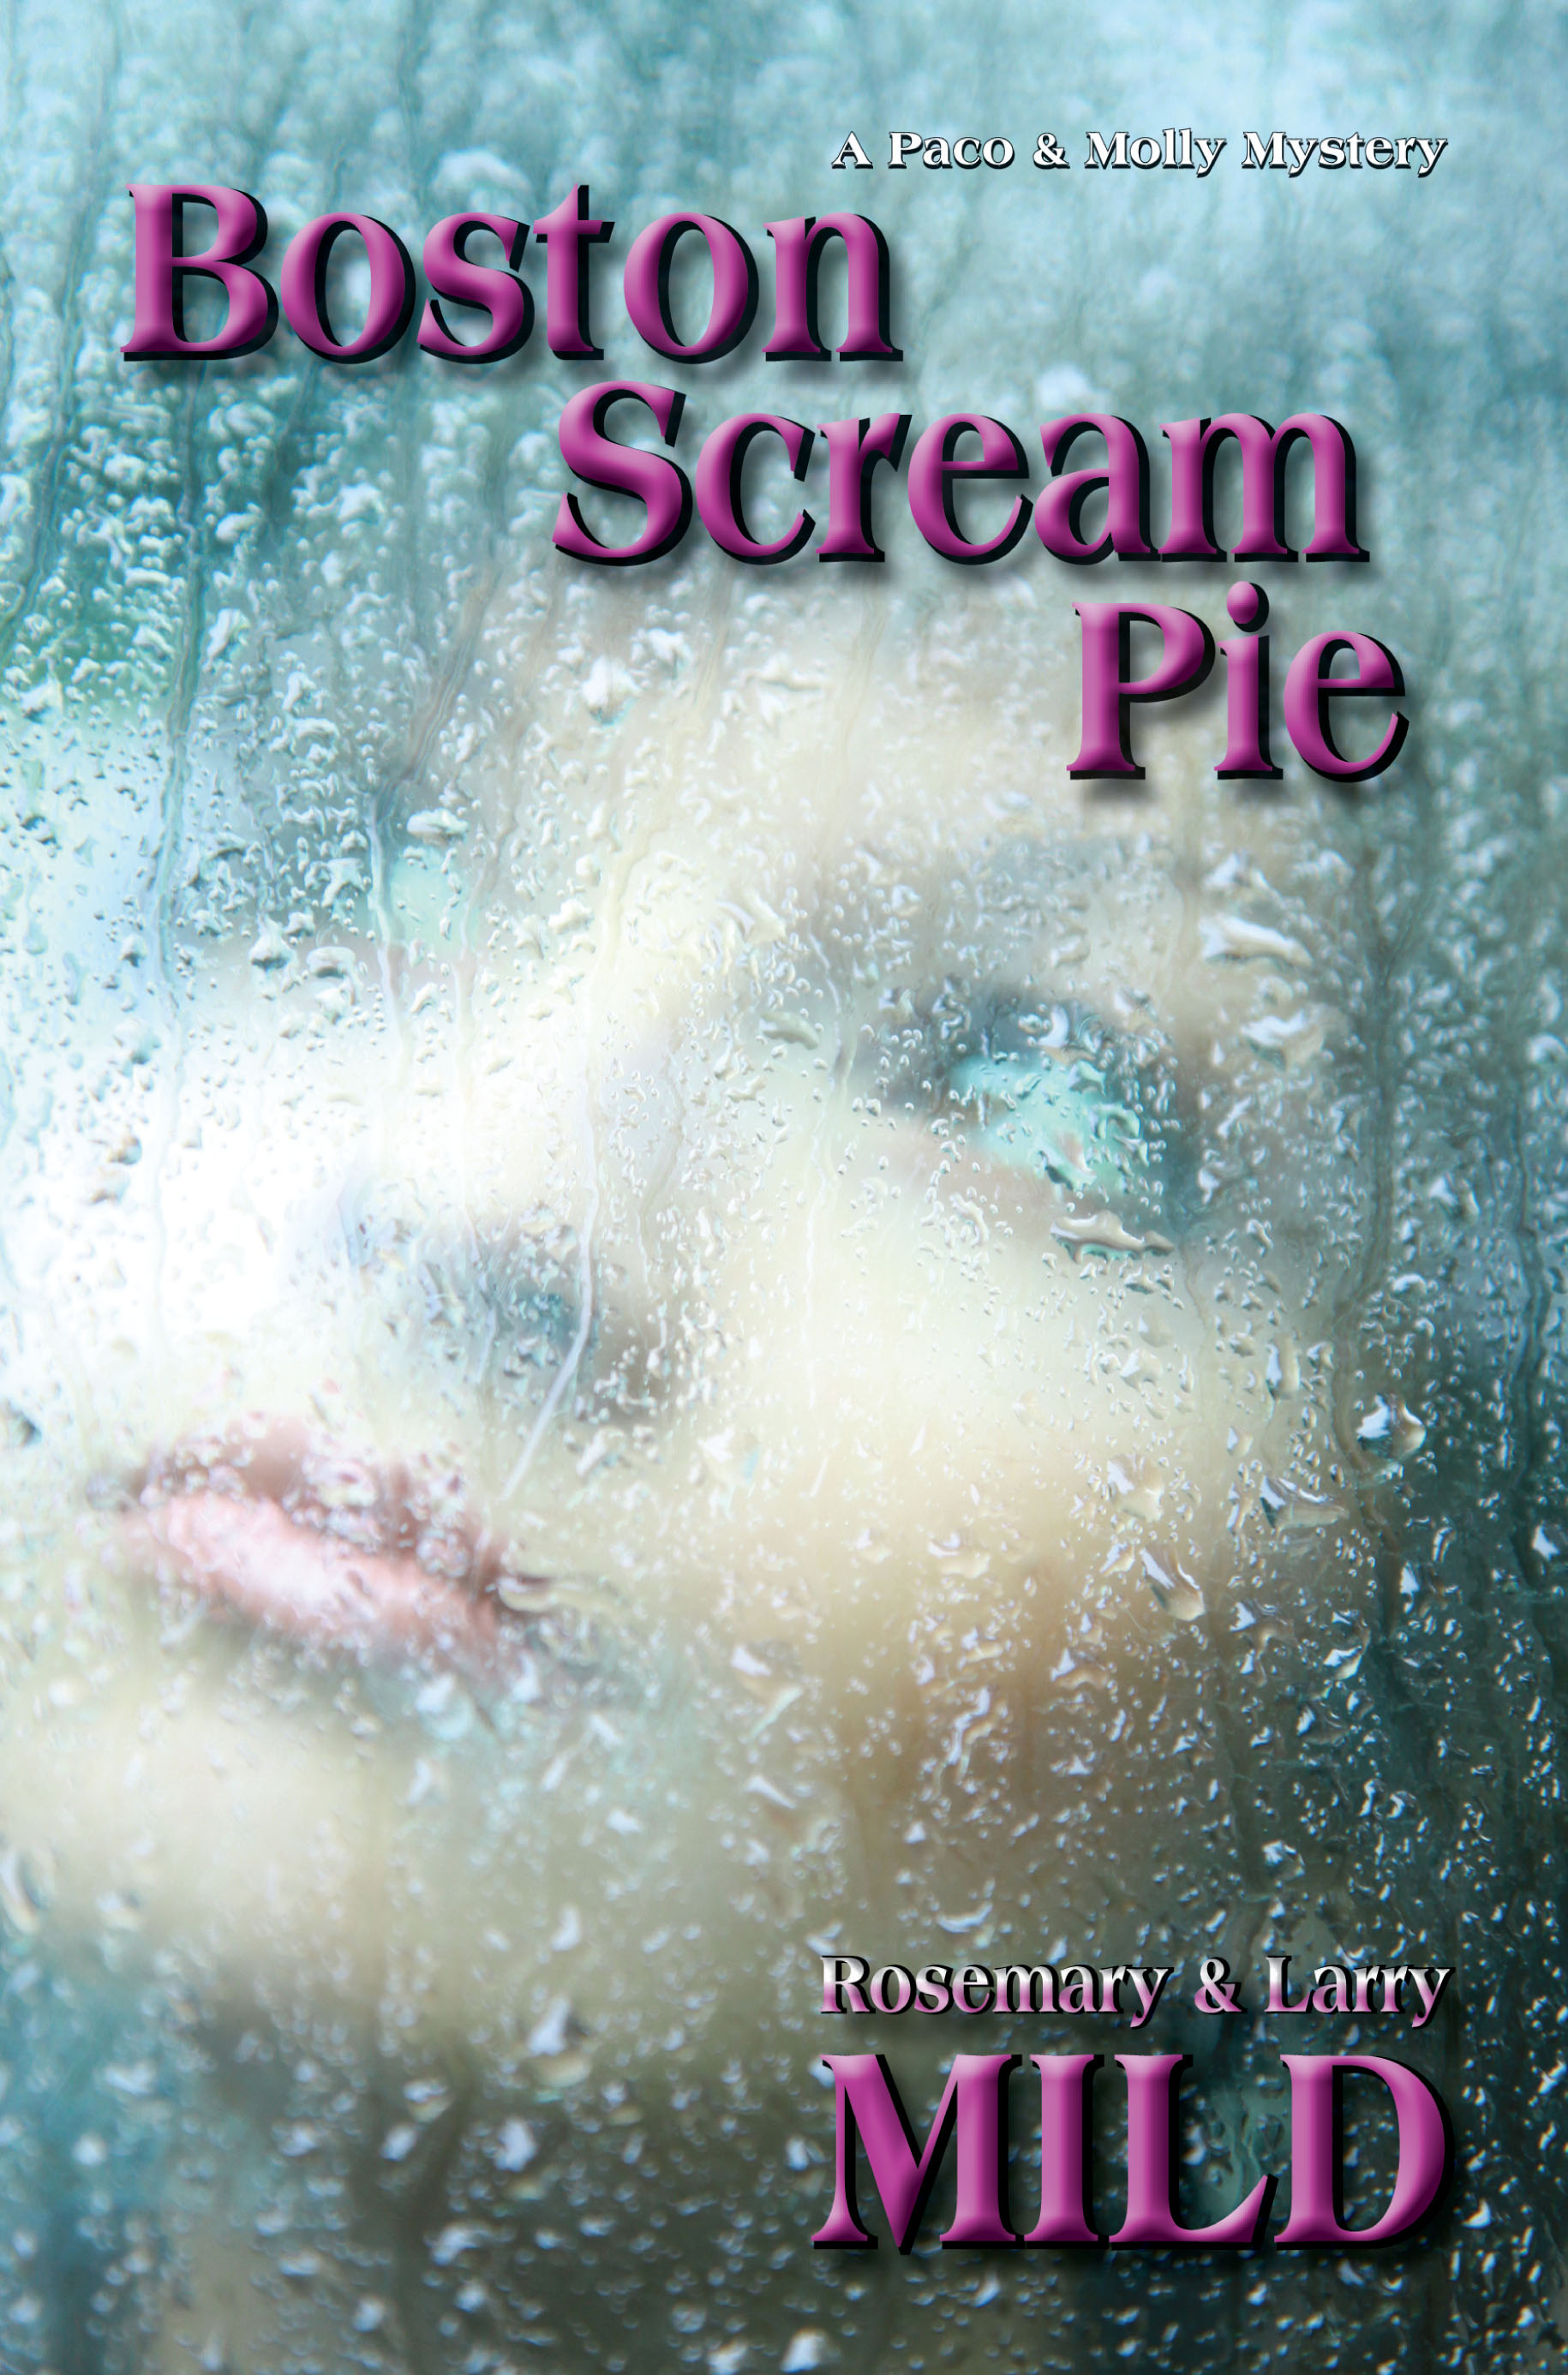 <i>Boston Scream Pie</i> by Larry & Rosemary Mild